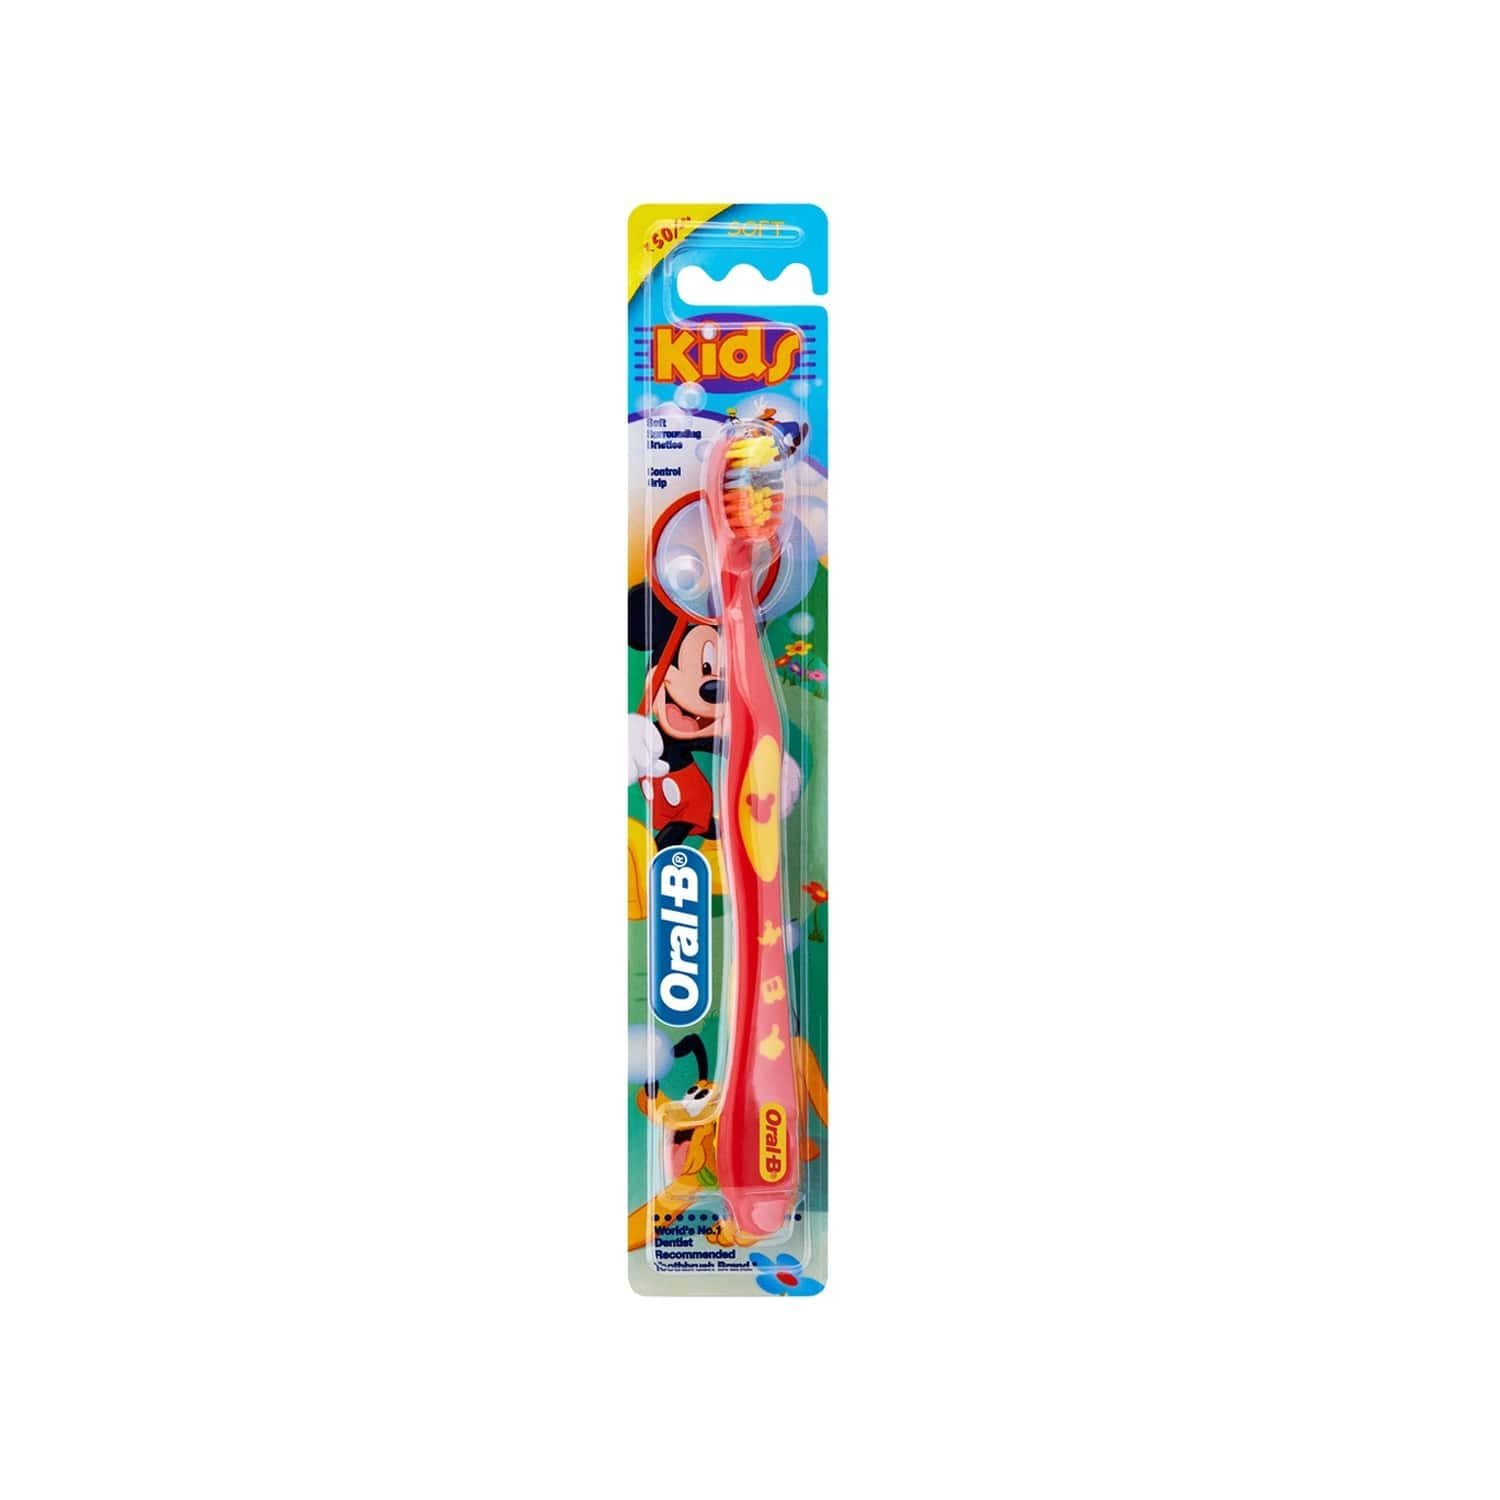 Oral-b Kids Soft Toothbrush 1 Piece Pack